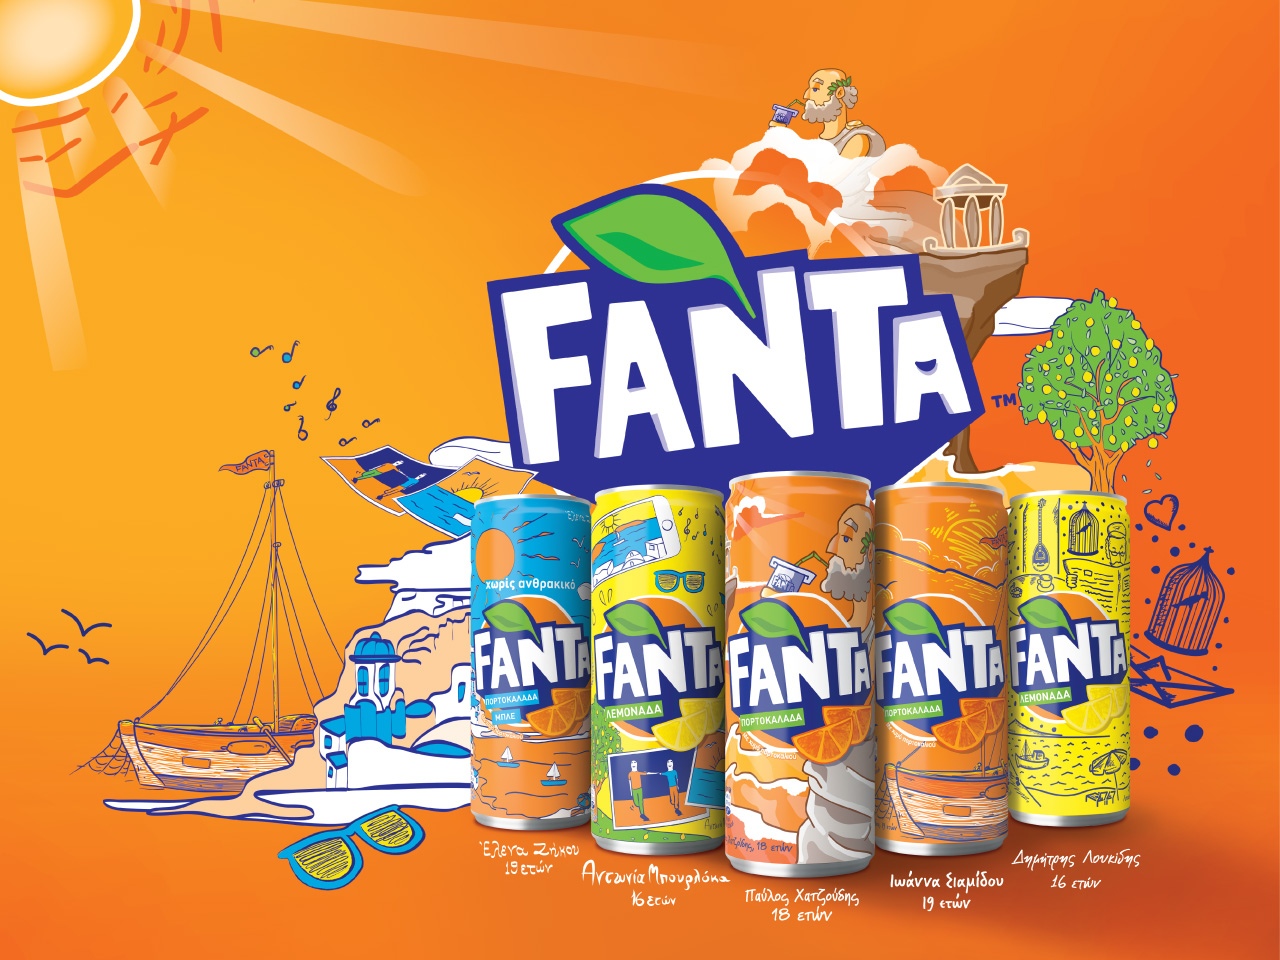 Fanta 'Draw the Can' 2019 featured image